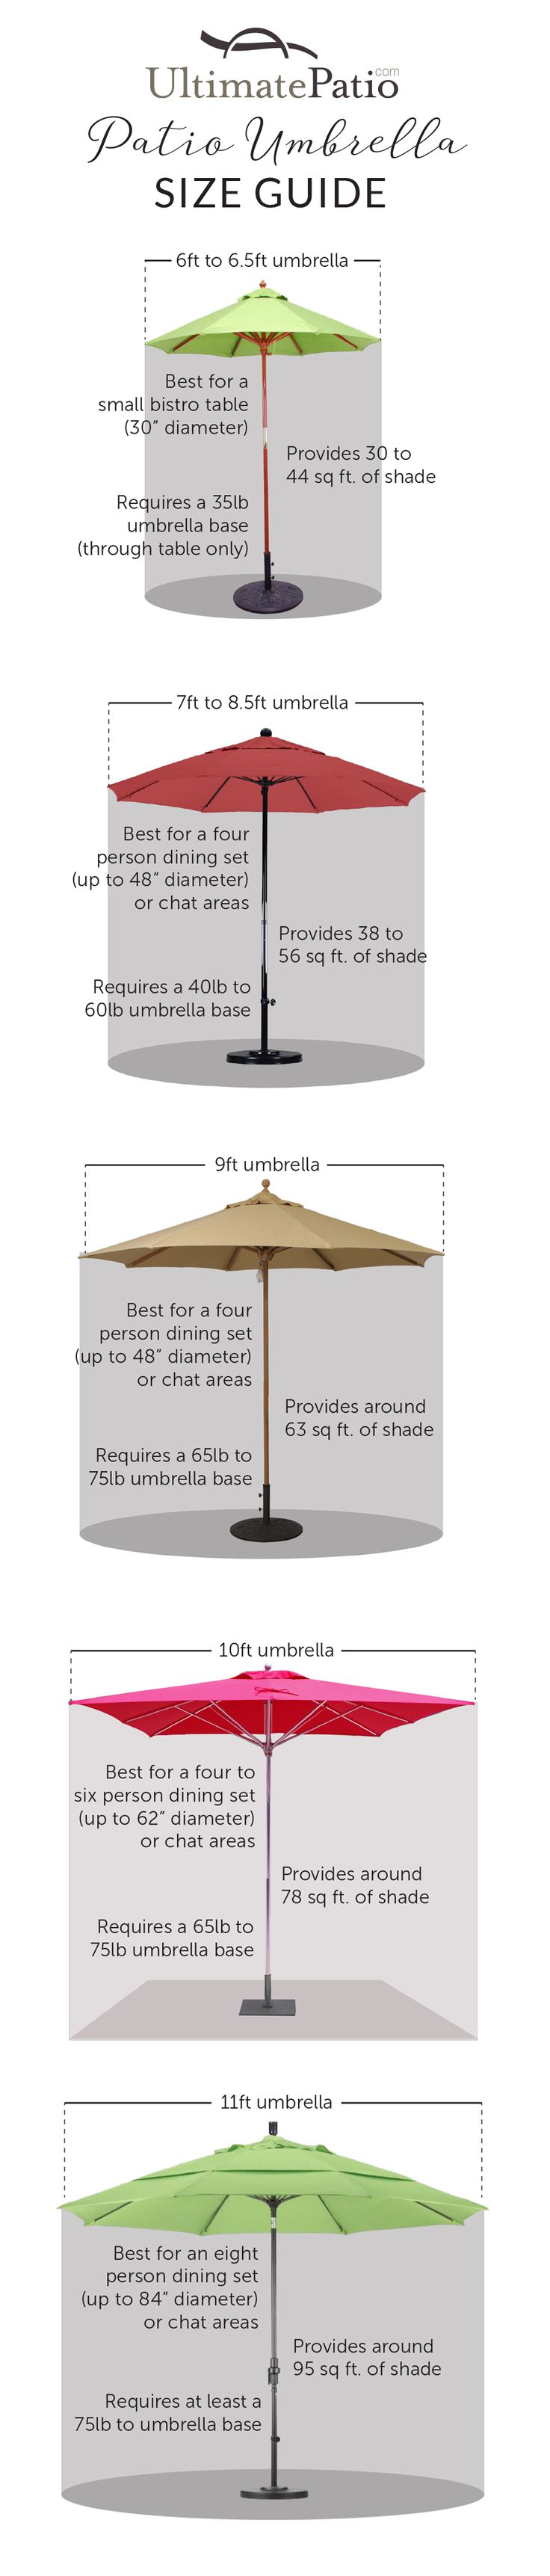 Determining the best size patio umbrella and base for an outdoor space is an important part of the buying process. This guide will ensure the umbrella you select suits your needs.